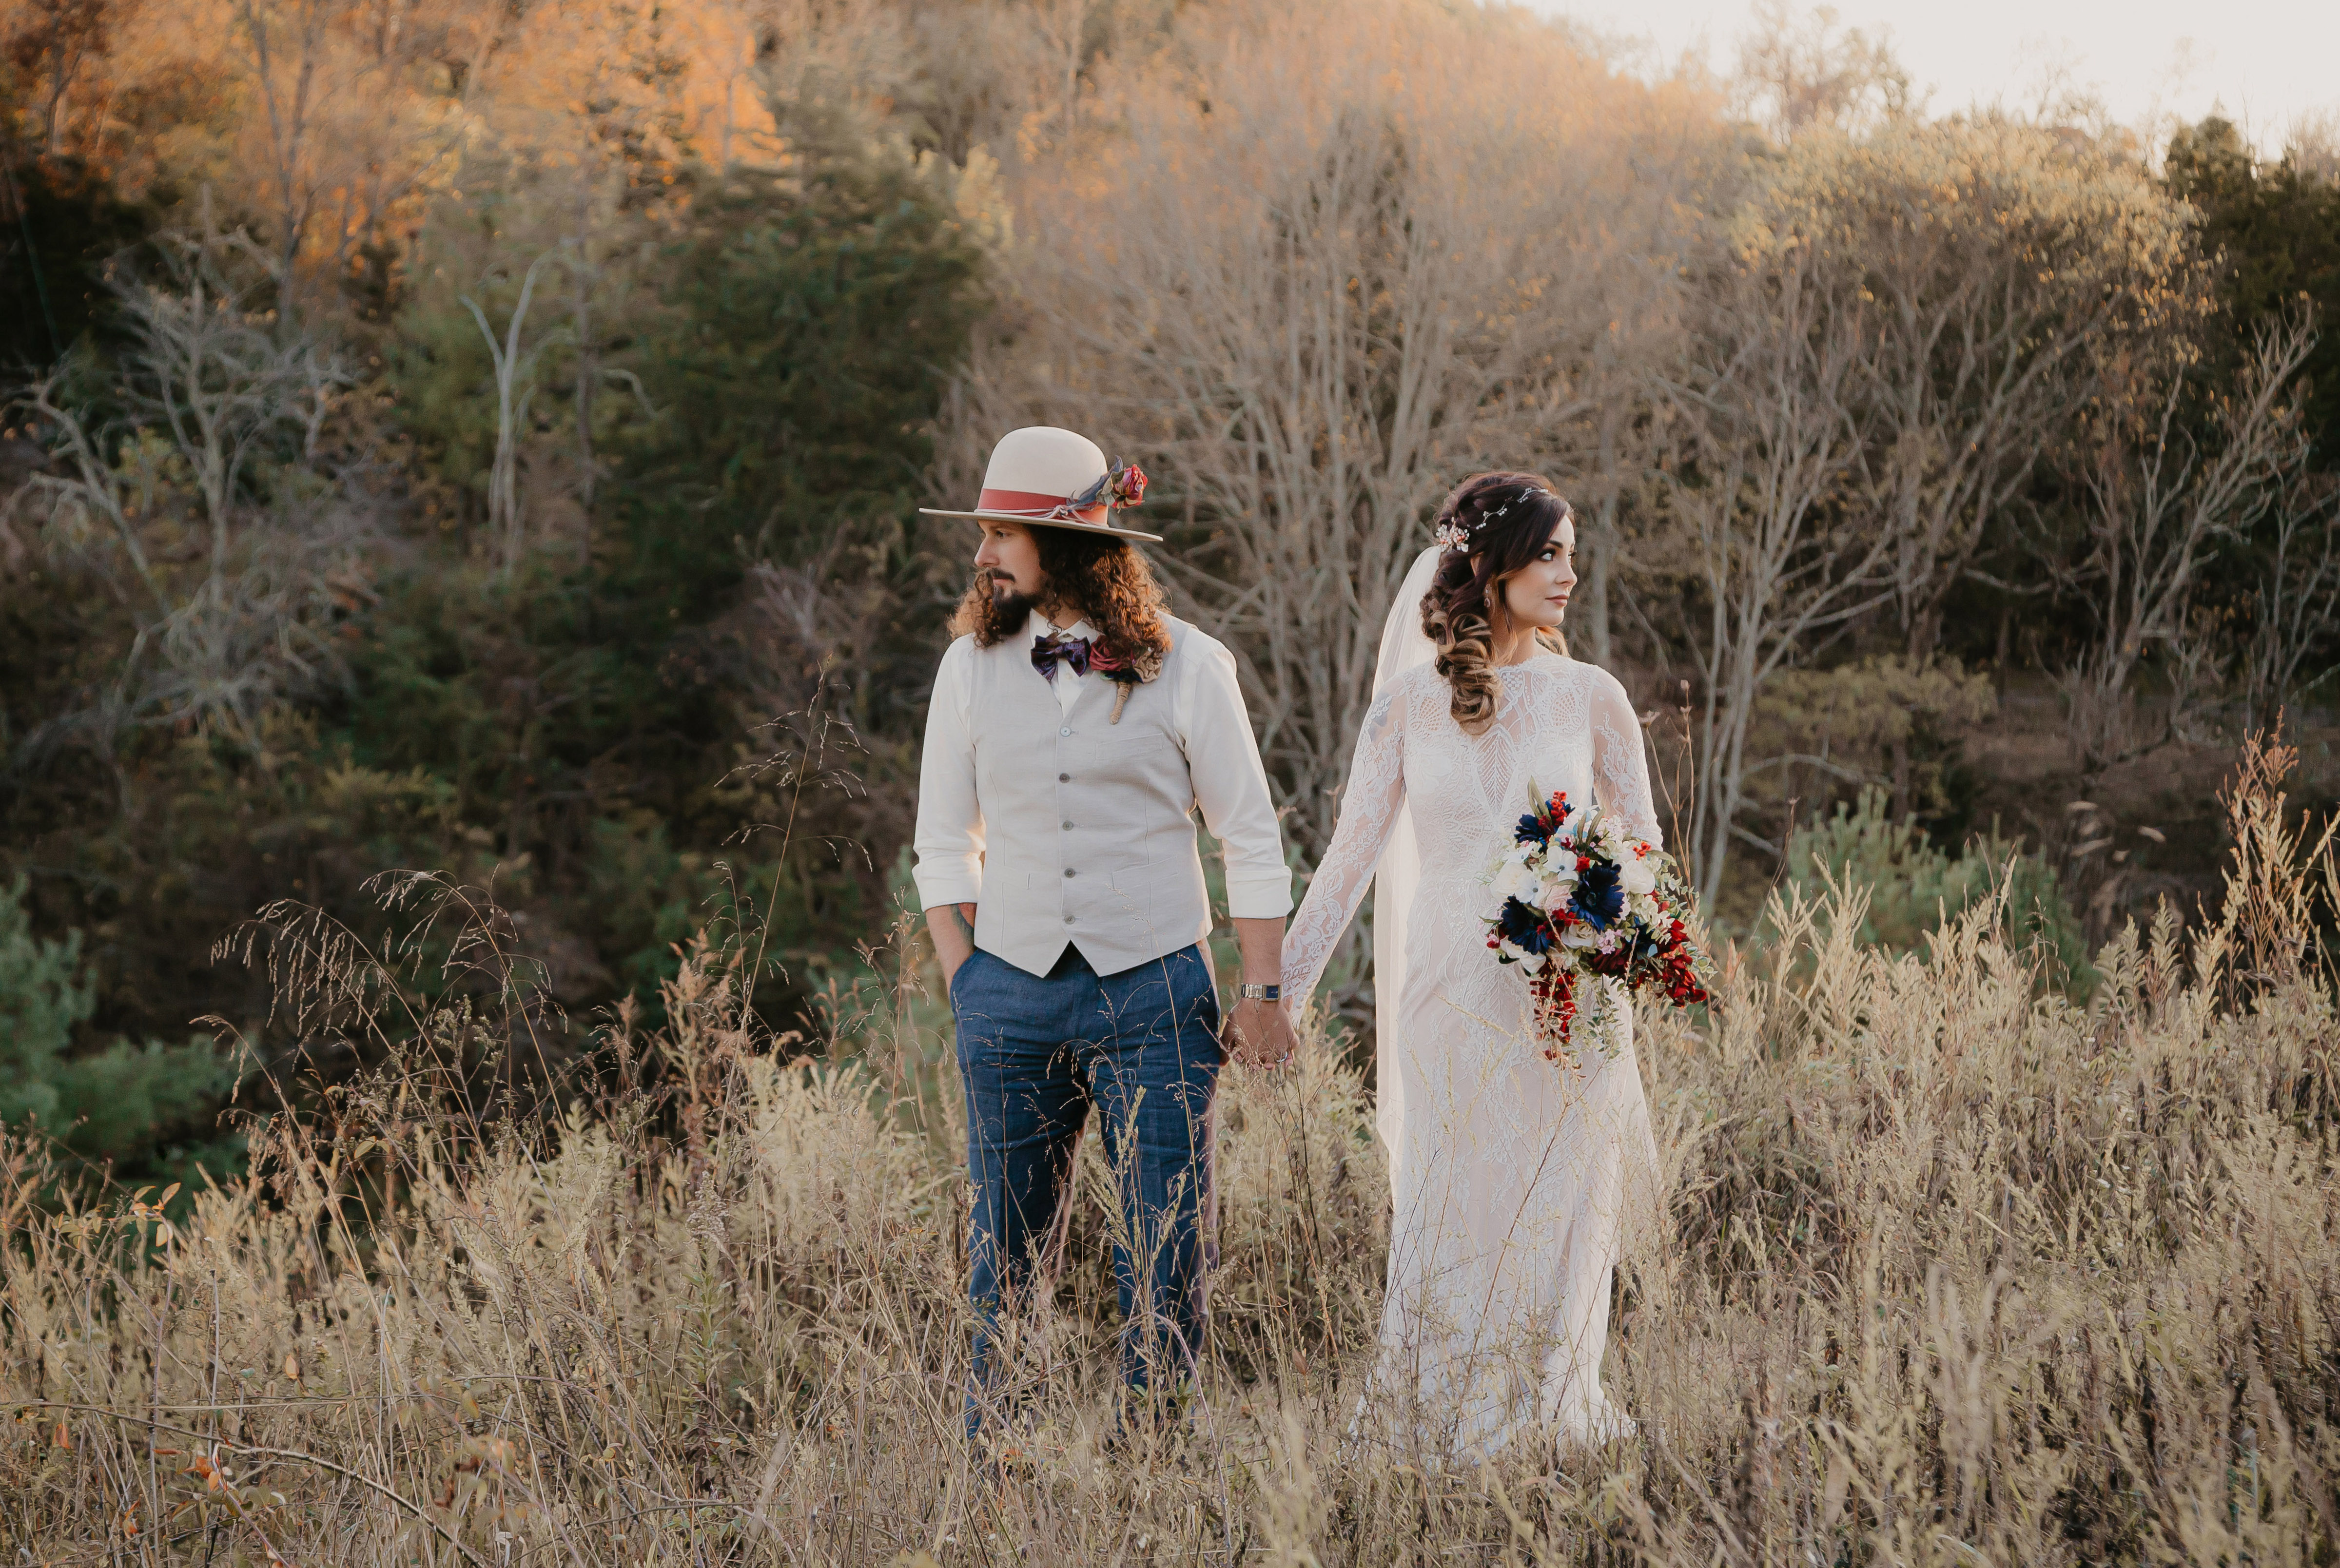 a couple walking through a field at flower mountains wedding venue in gatlinburg tennessee, this was their elopement